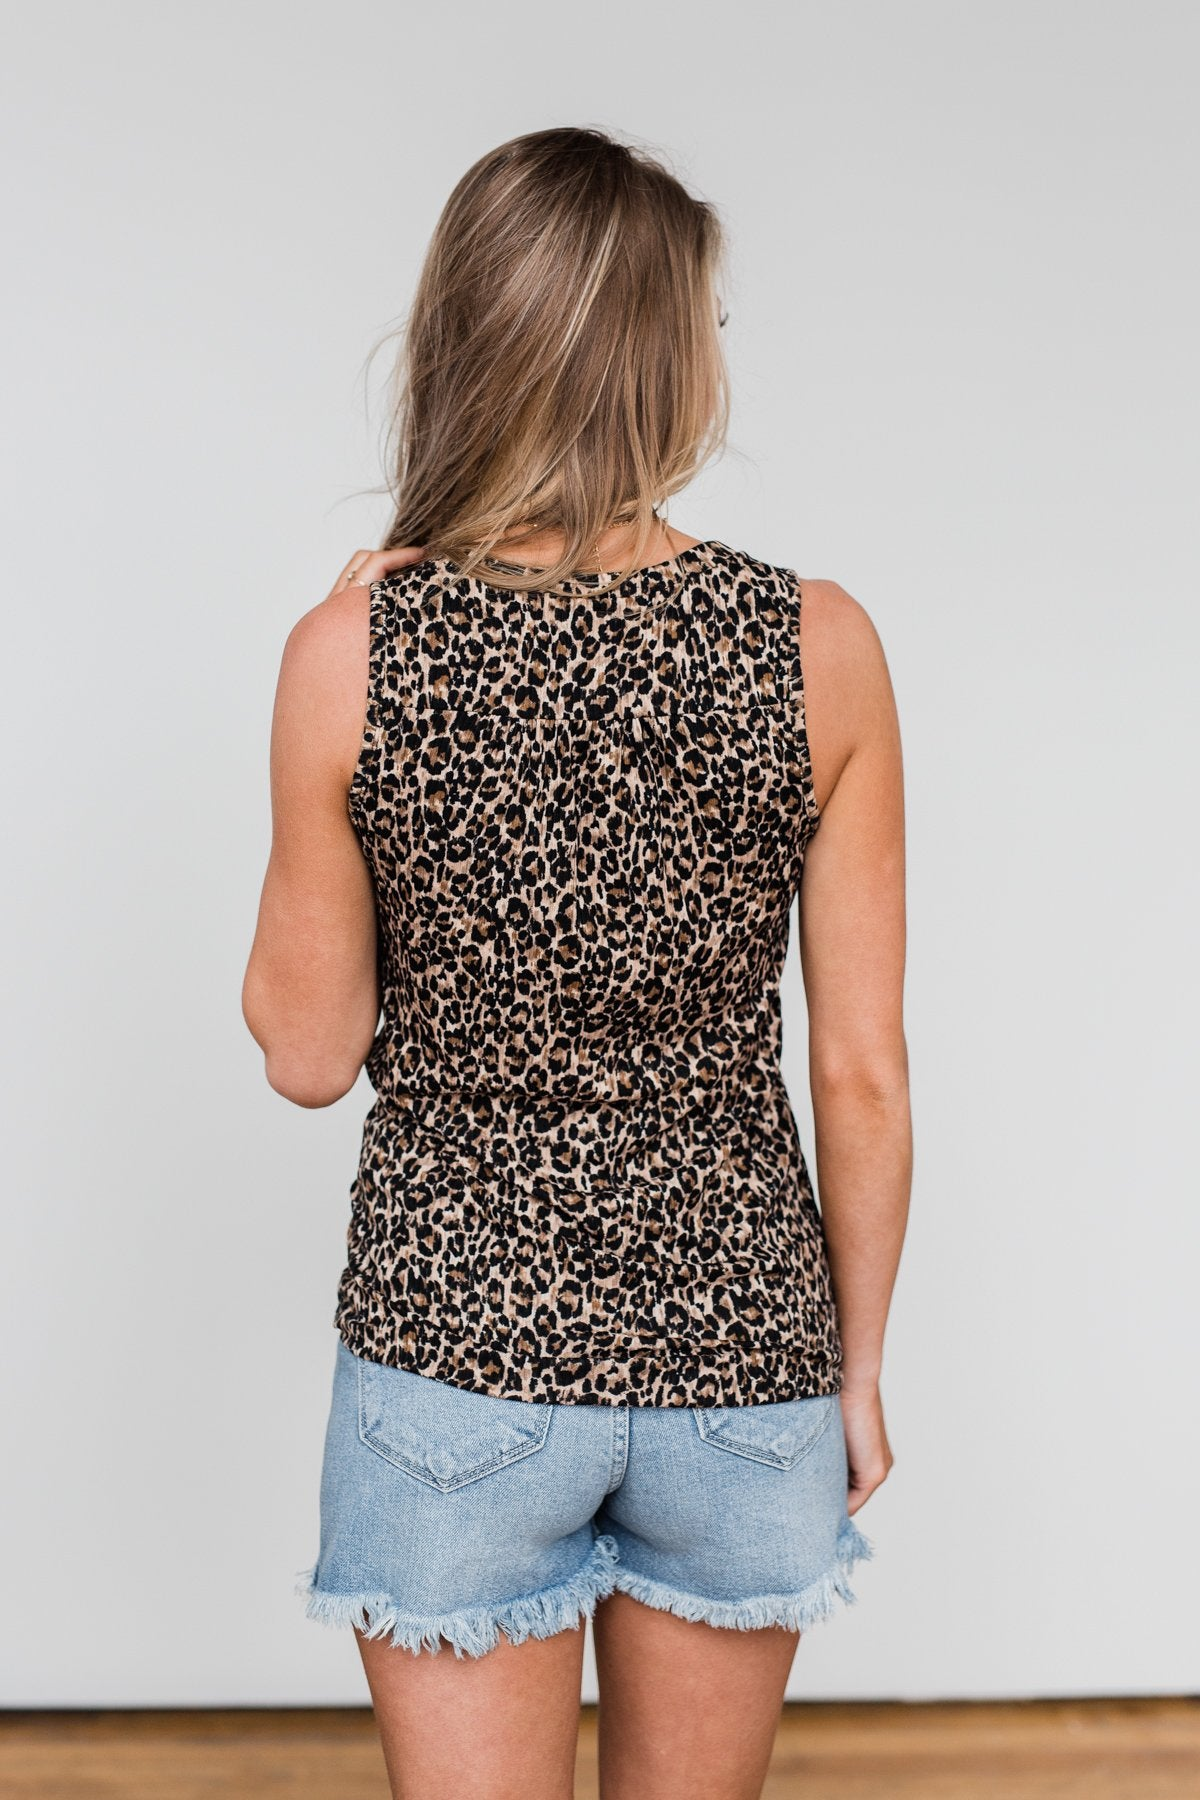 Just Passing Through Leopard Tank Top- Black & Brown